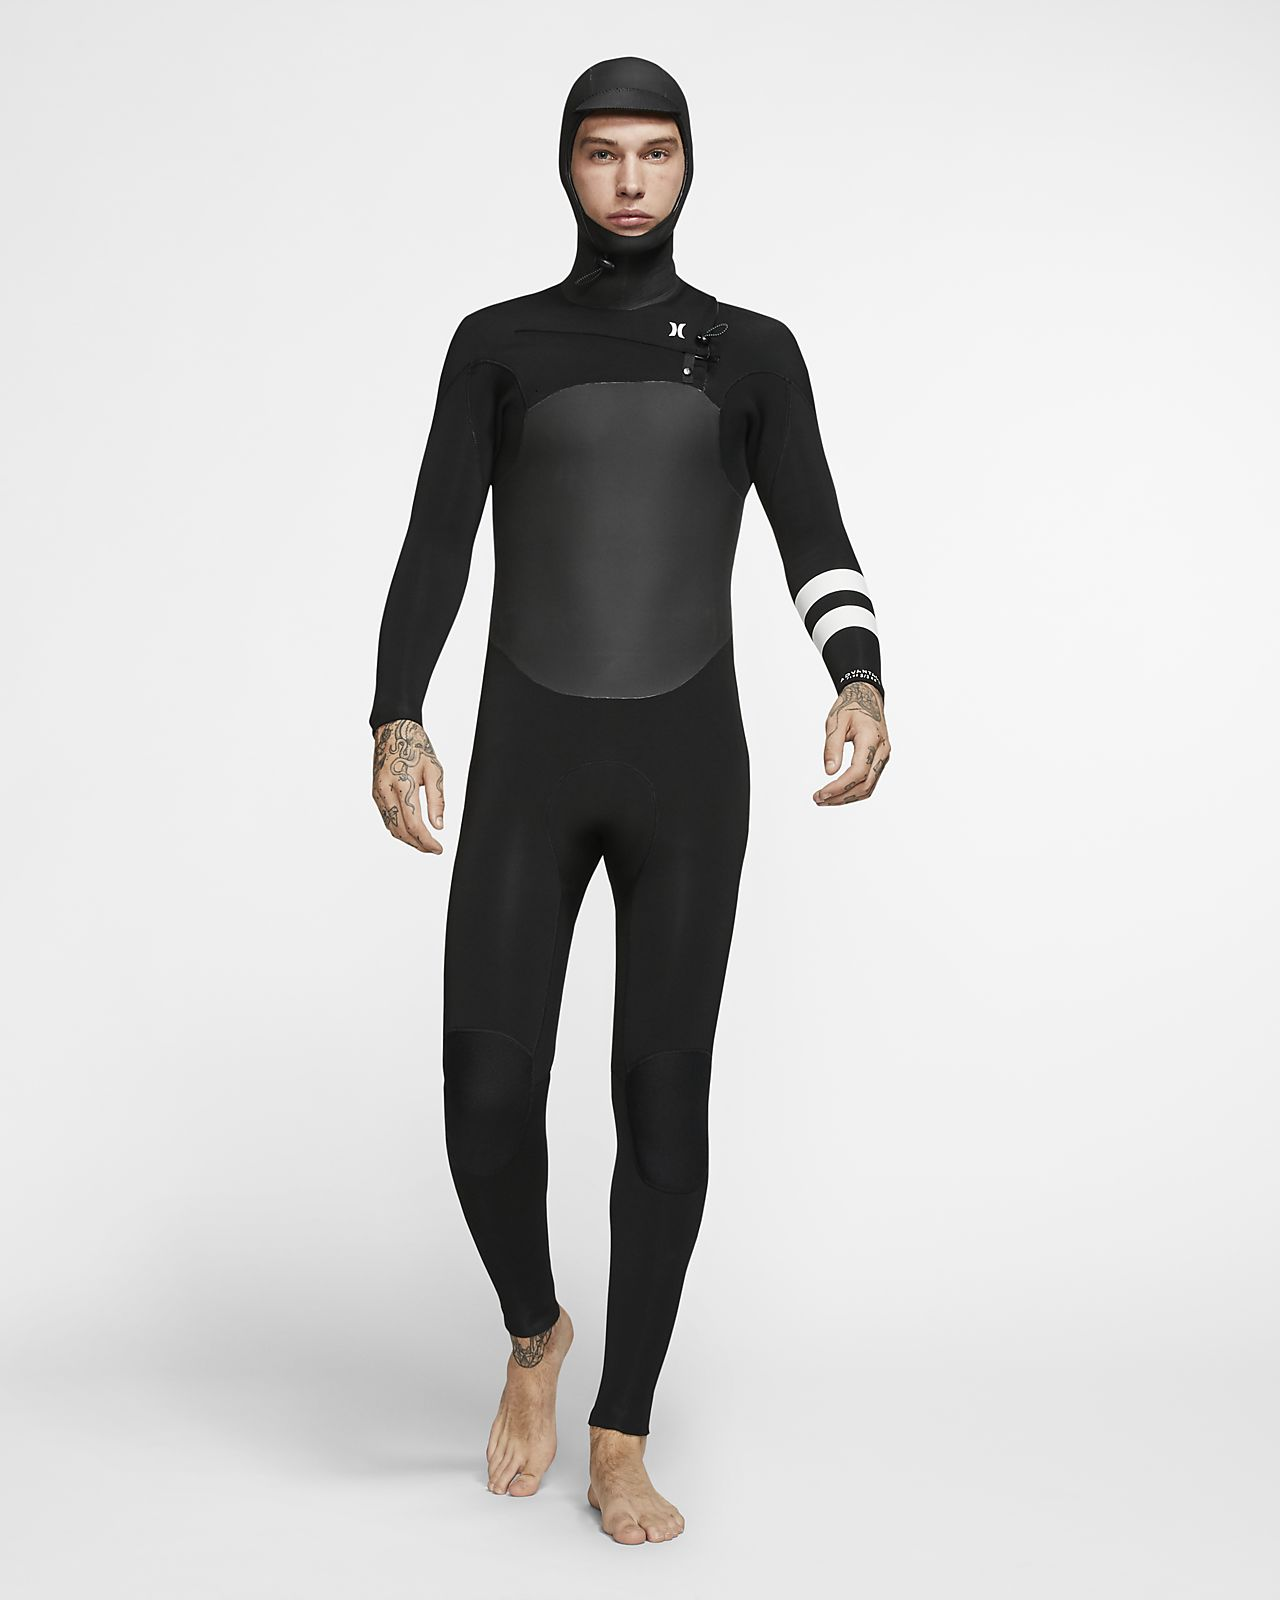 Hurley Advantage Plus 5/3mm Fullsuit Men's Hooded Wetsuit